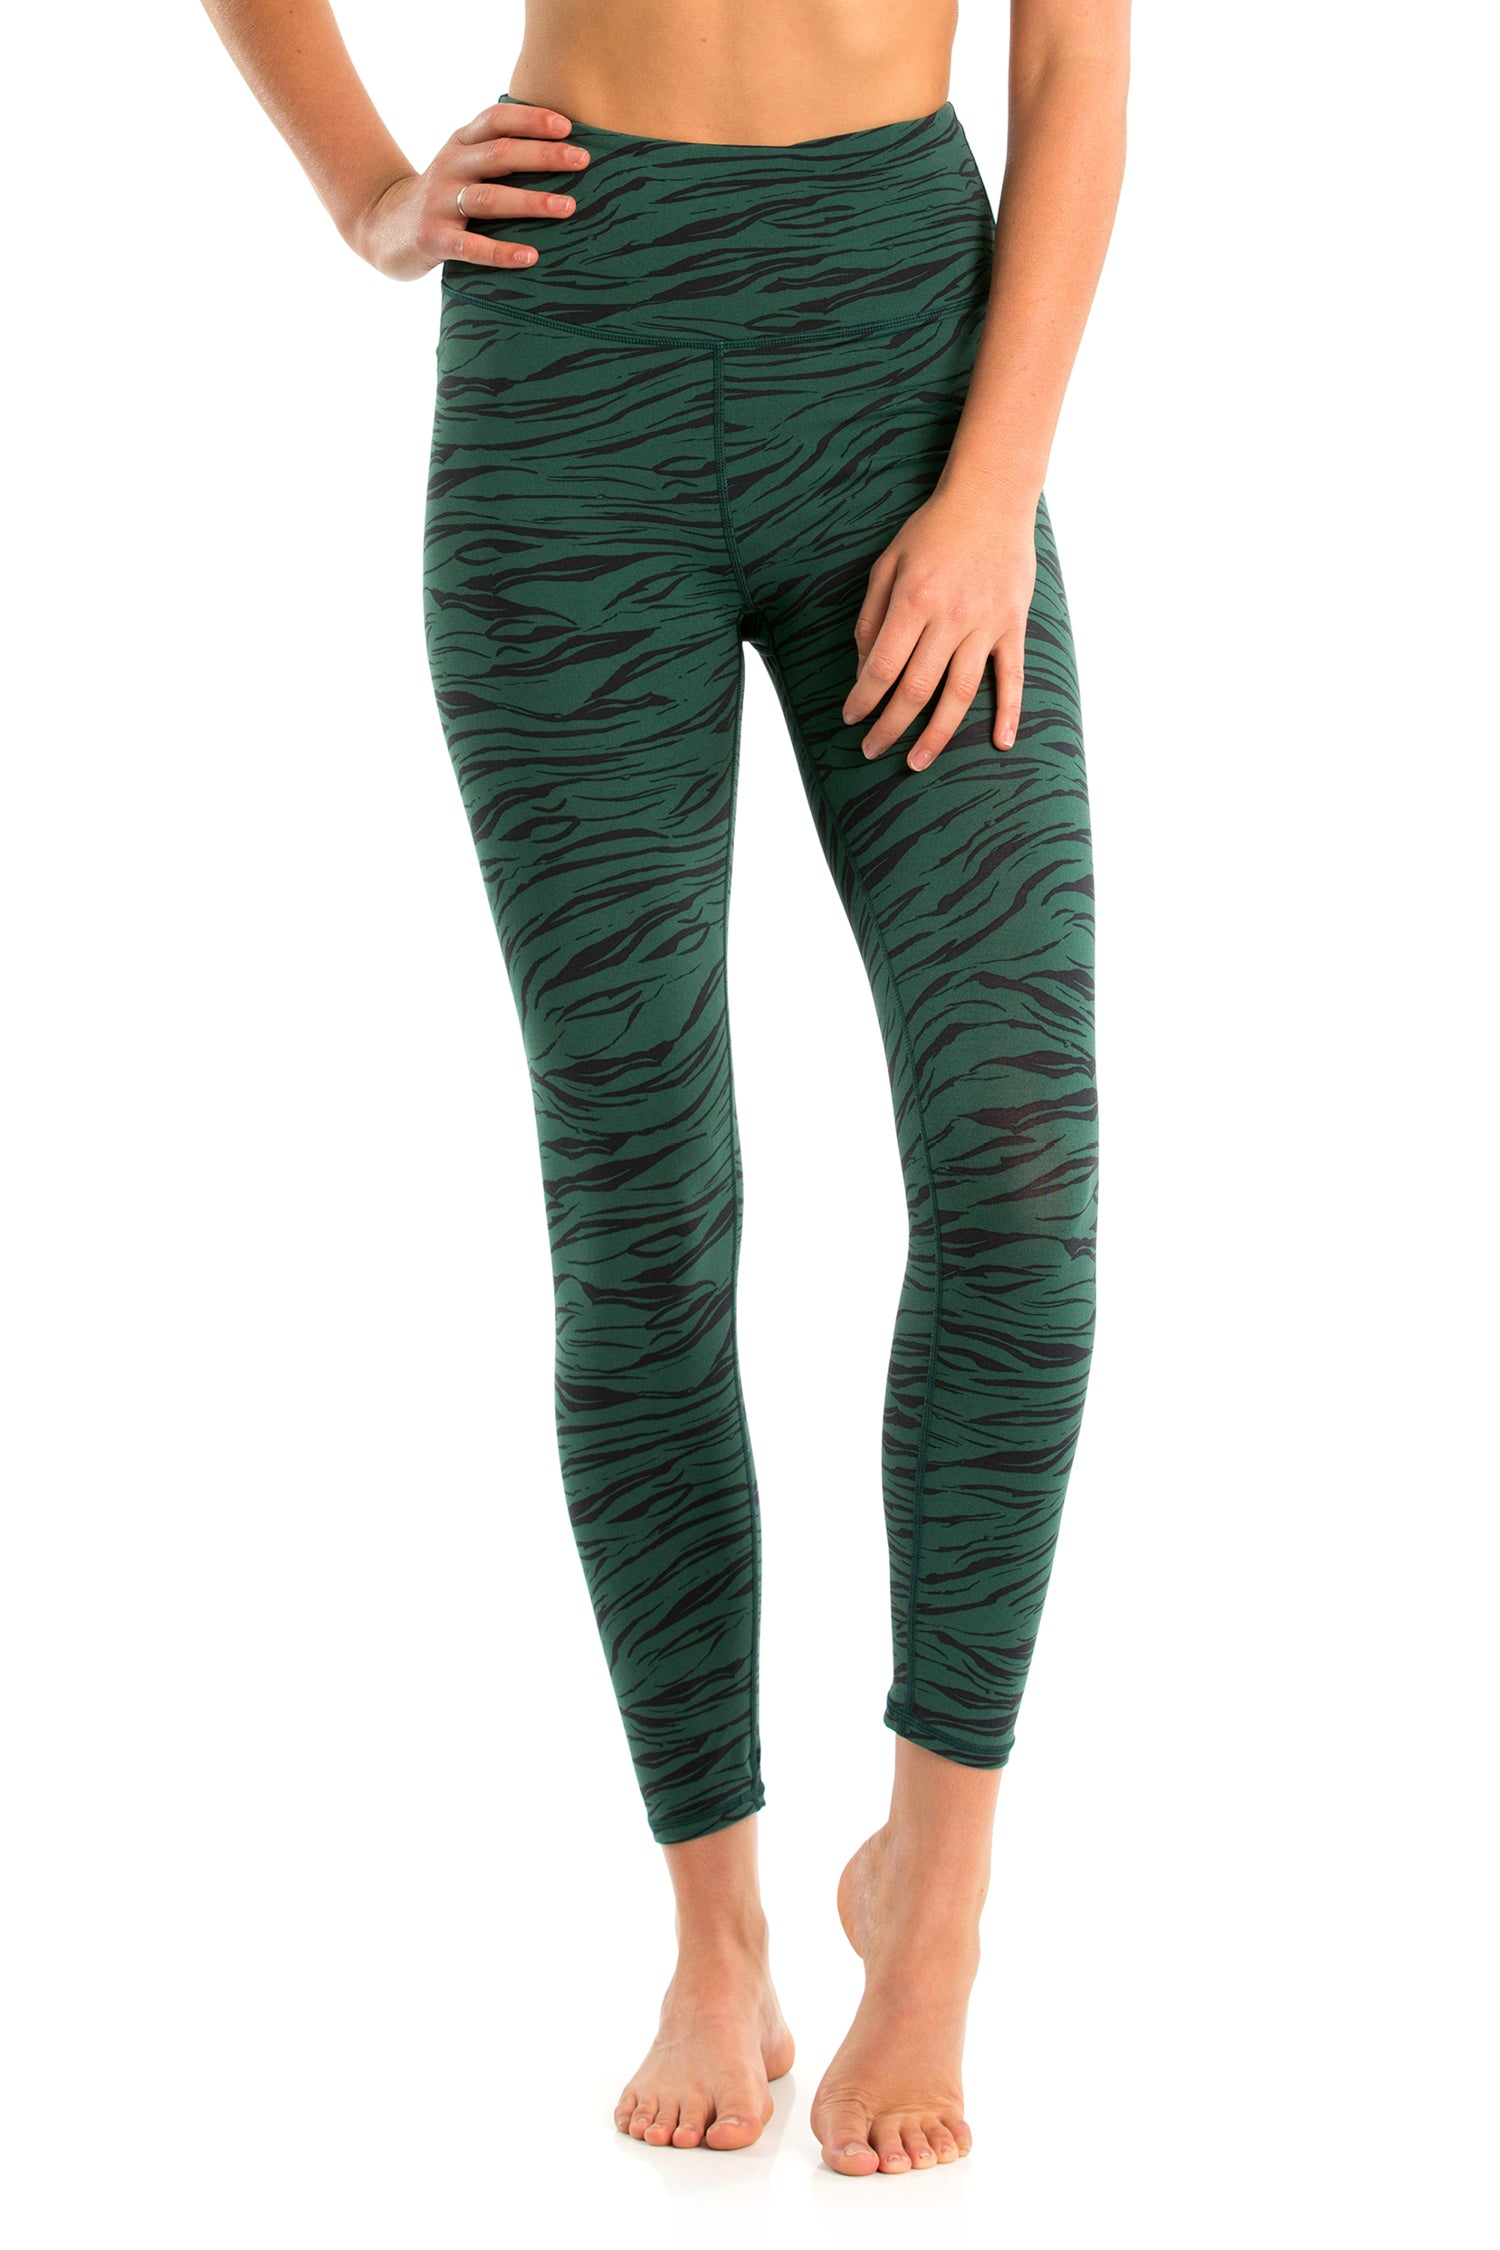 Tiger Tribe Legging